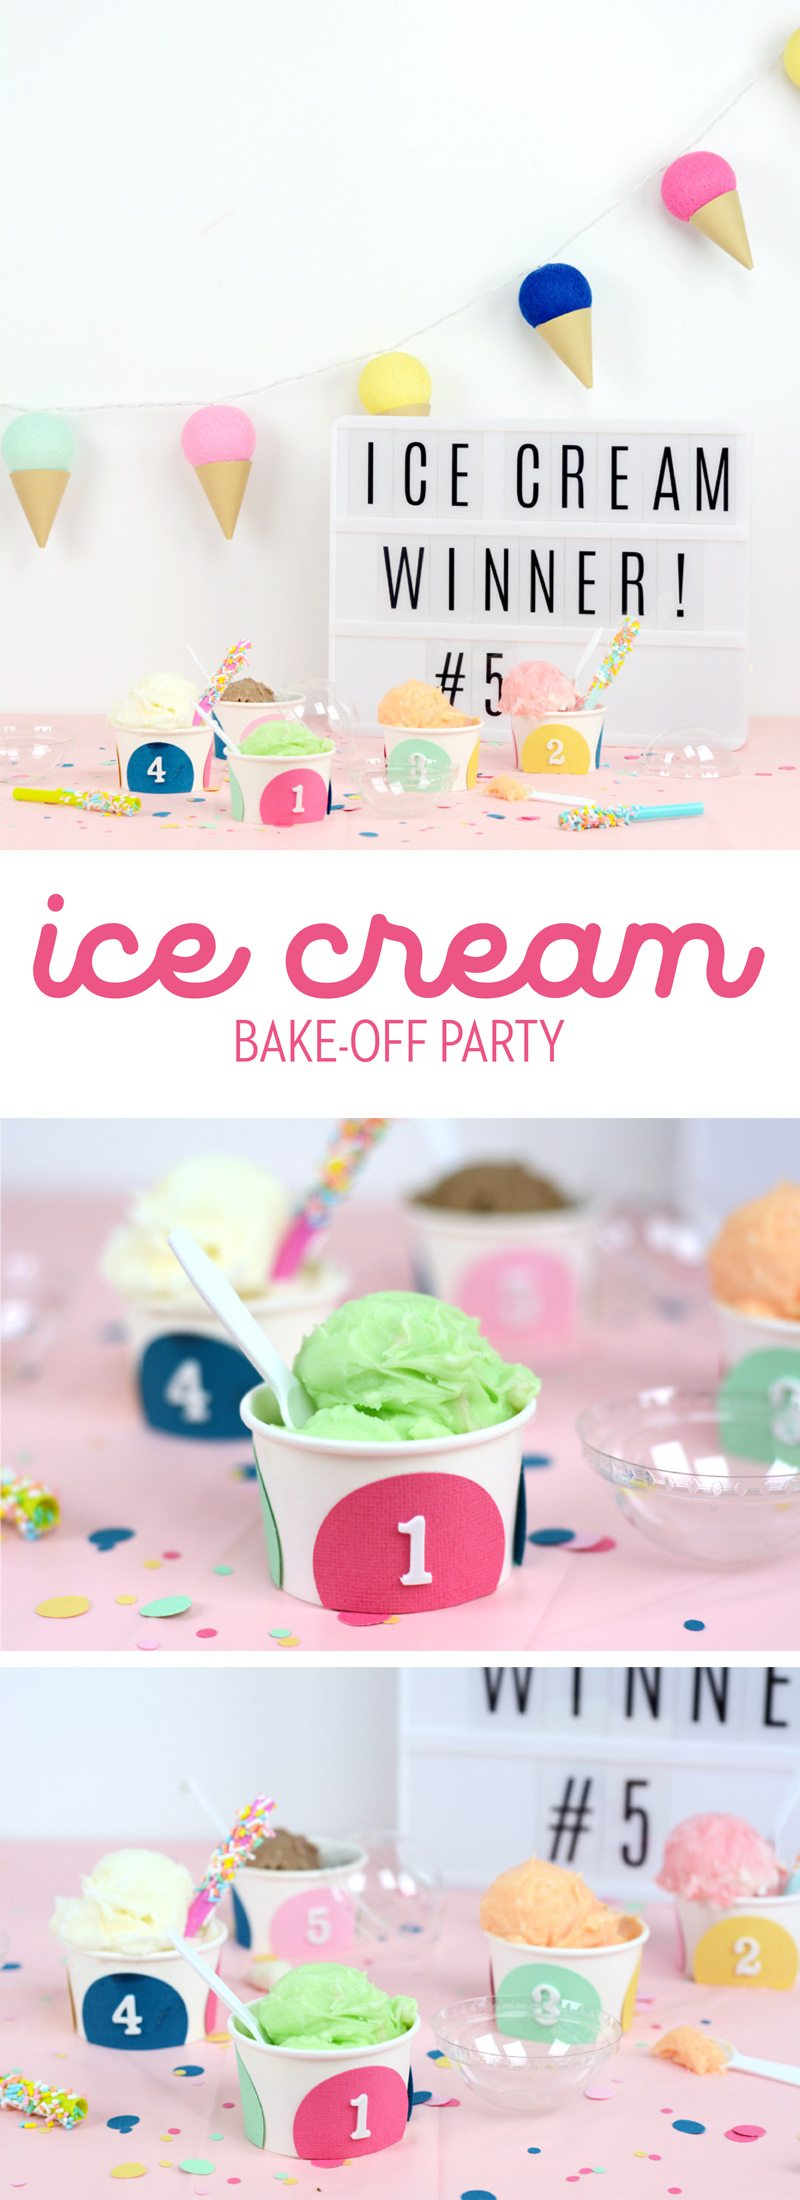 Looking for Summer BBQ Party Ideas? How about having an Ice Cream Contest complete with adorable DIY Sprinkle Straws! See it all from Amy Robison on Love the Day